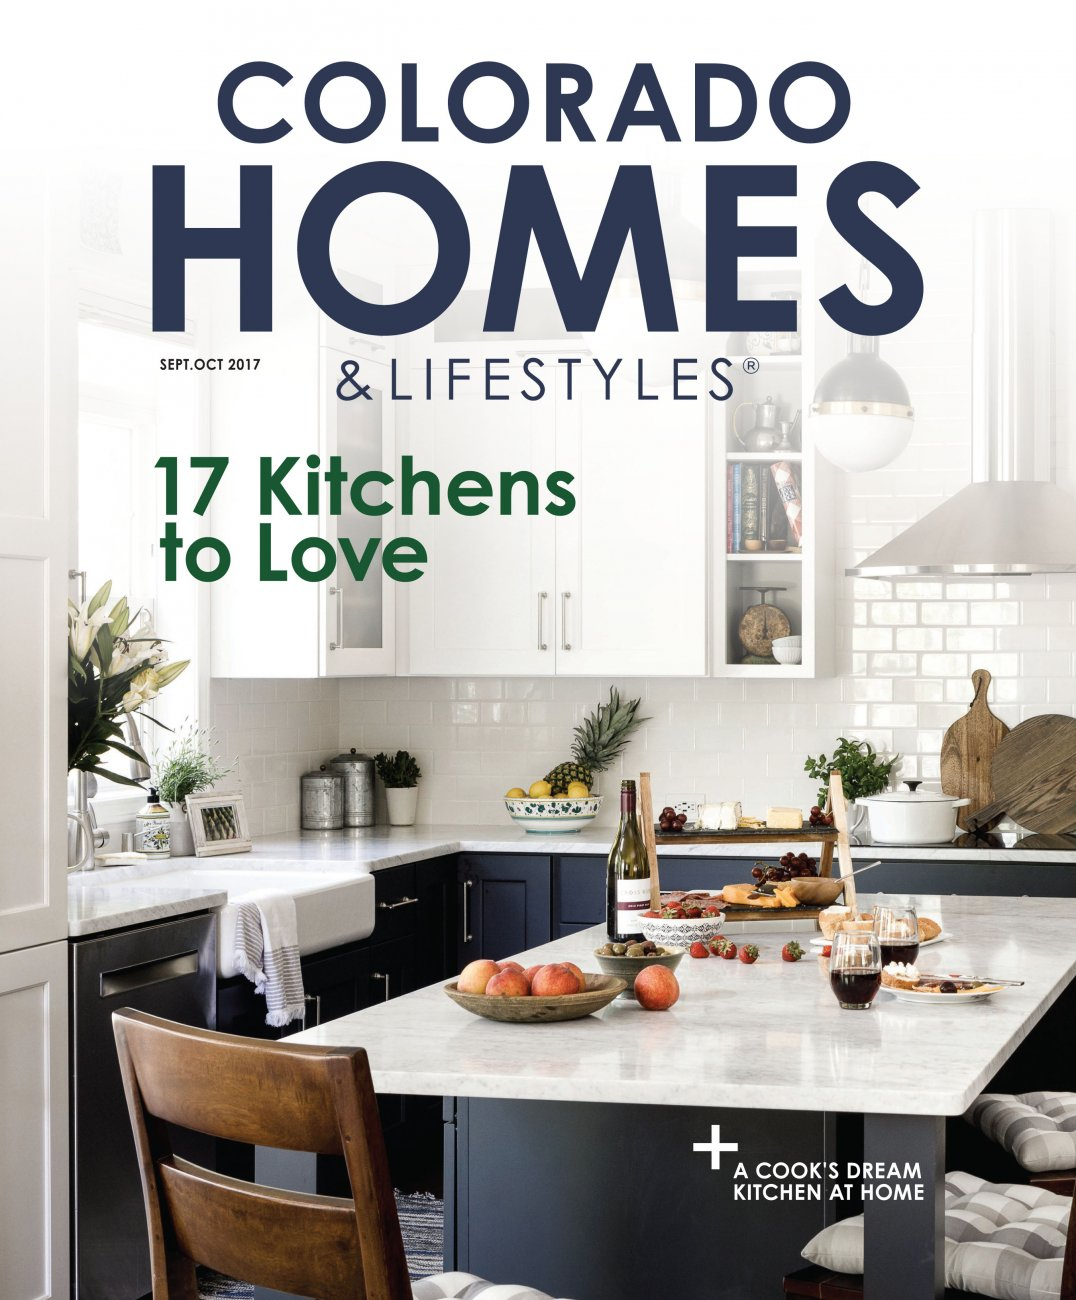 Colorado Homes & Lifestyles / September - October 2017 / Colorado Homes & Lifestyles